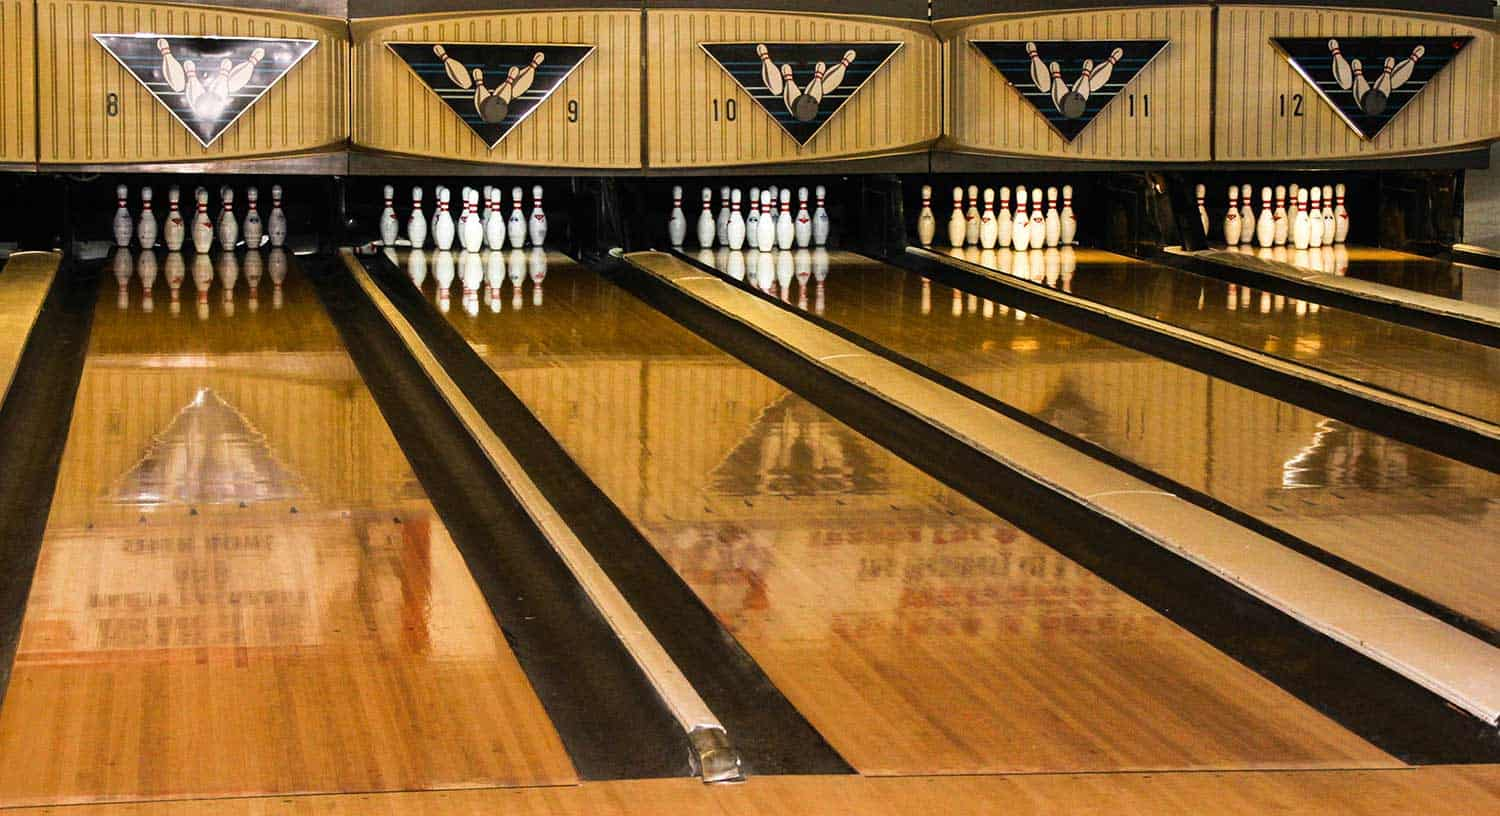 A shot of bowling alley